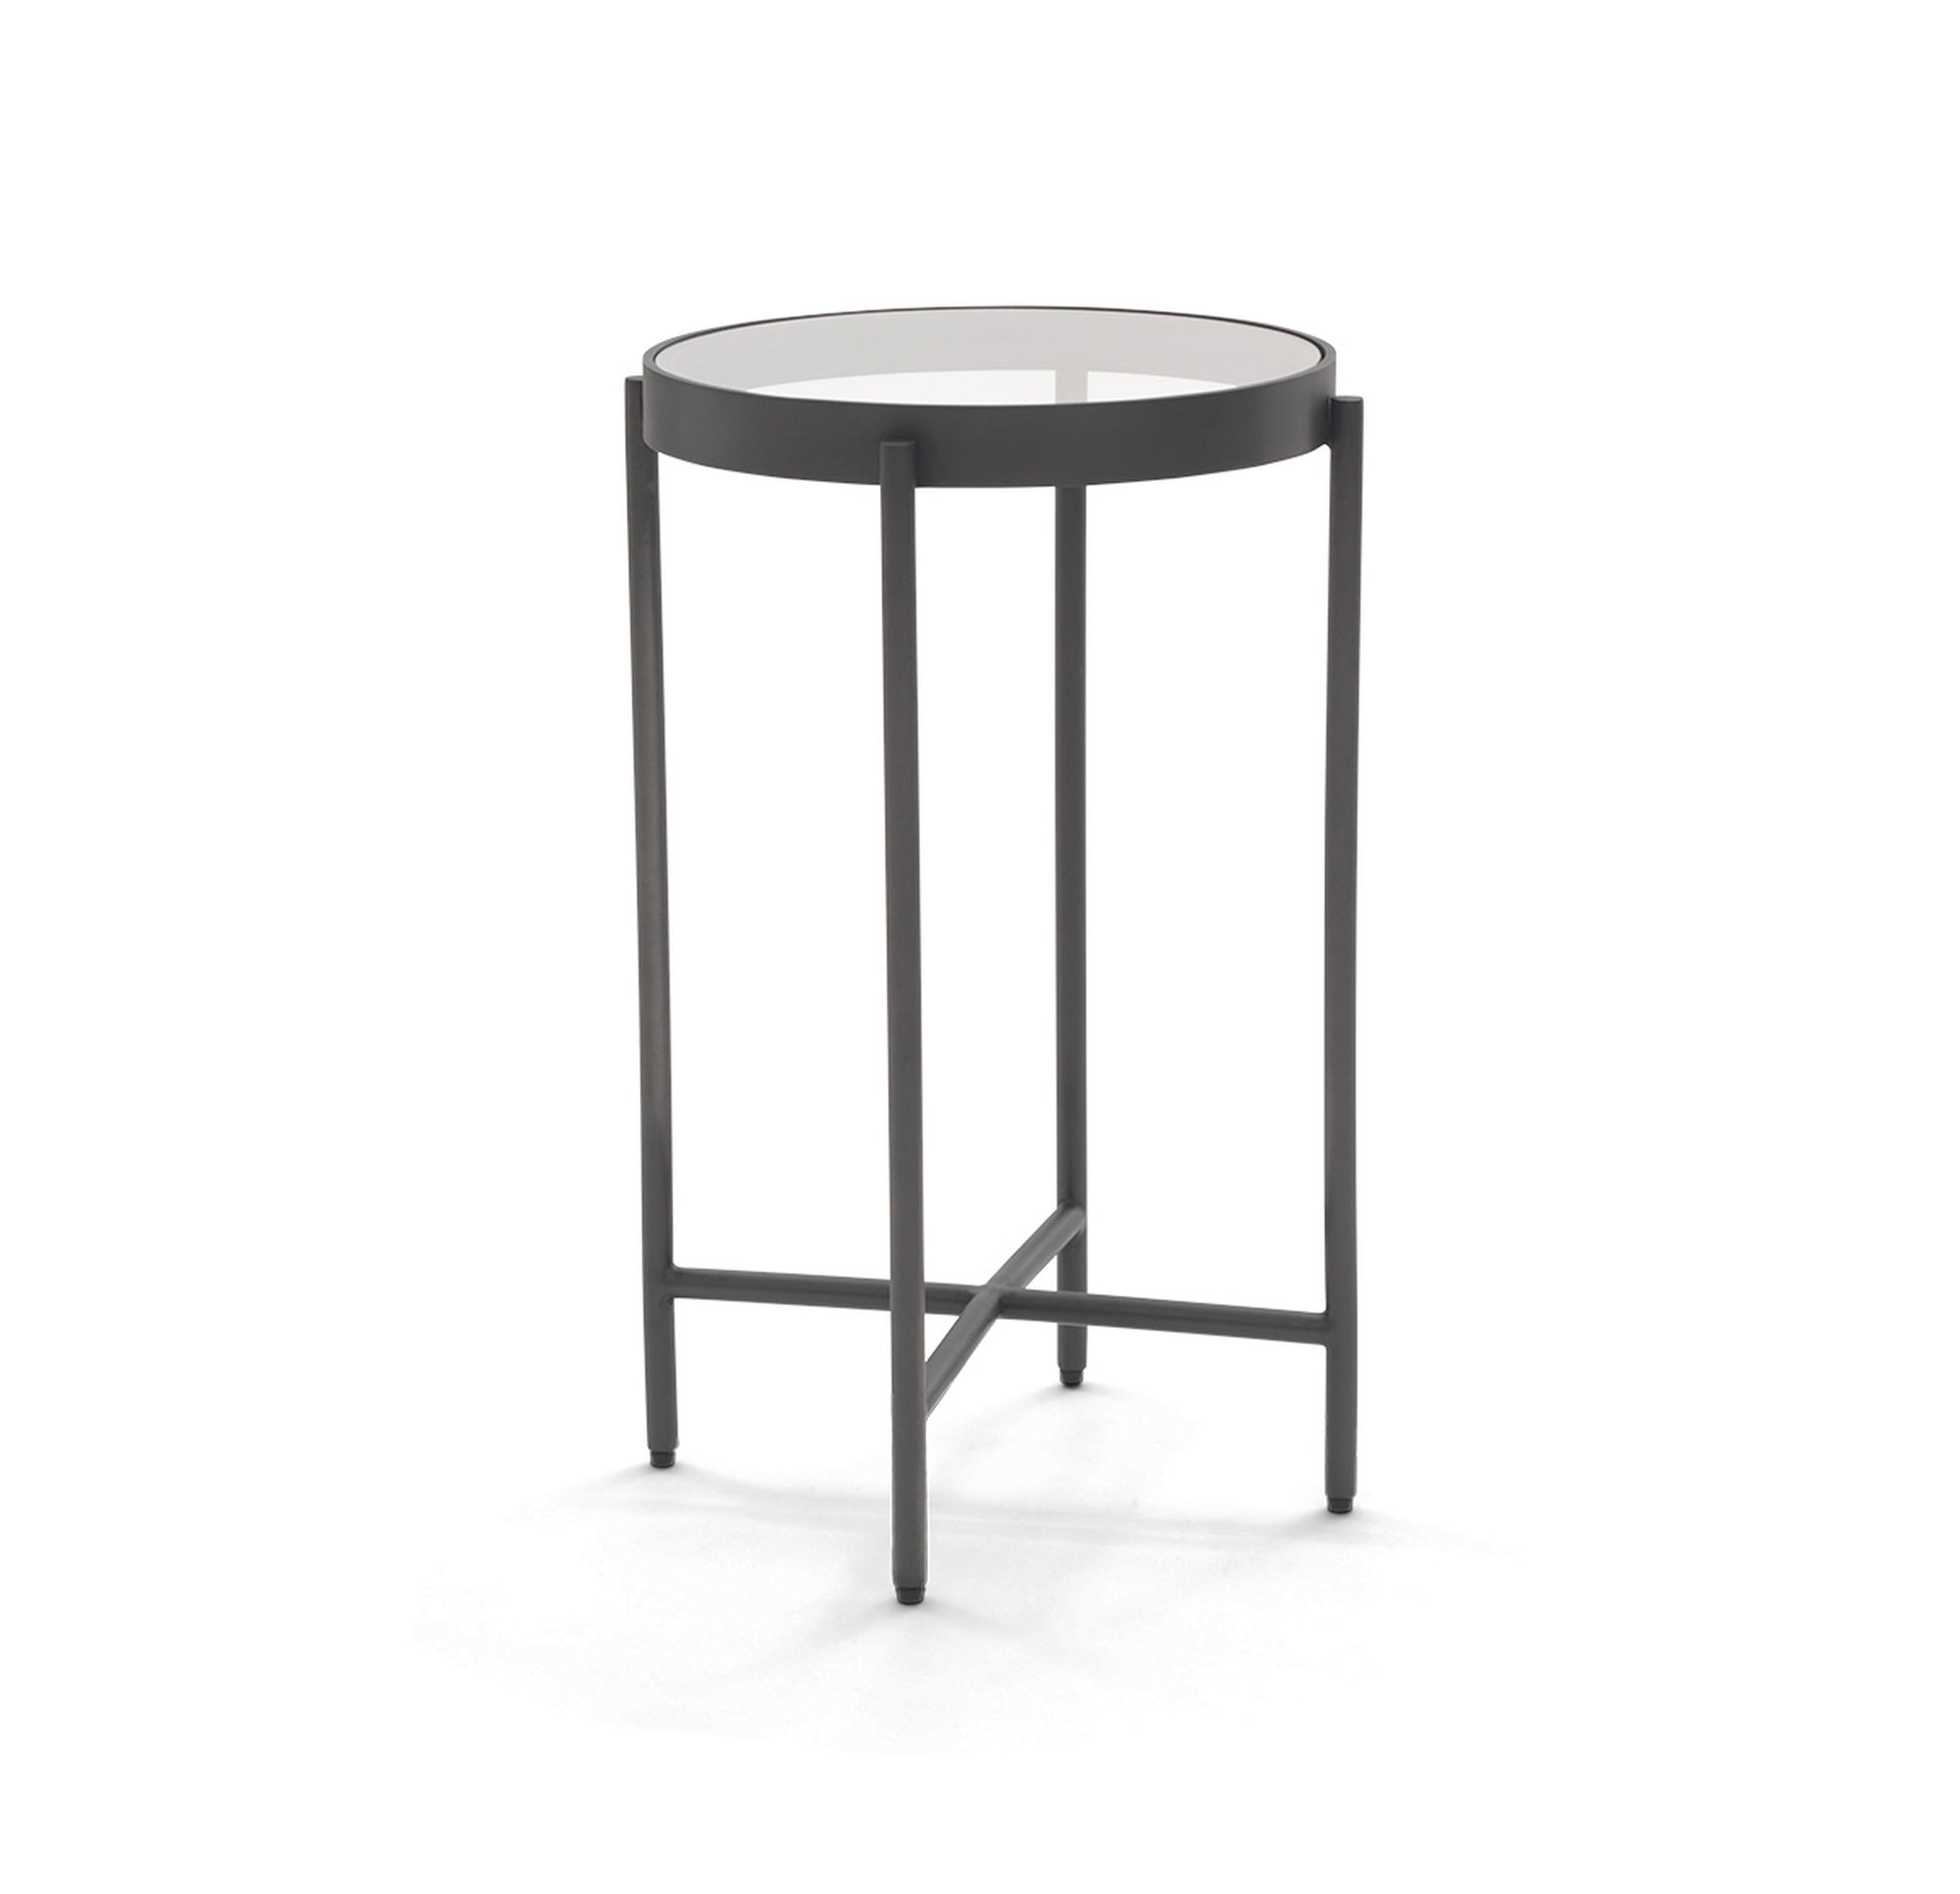 turino accent table turinoaccent hero small marble end laptop height adjustable shaped ikea chai diy metal dog crate stainless steel legs unfinished space saving coffee country